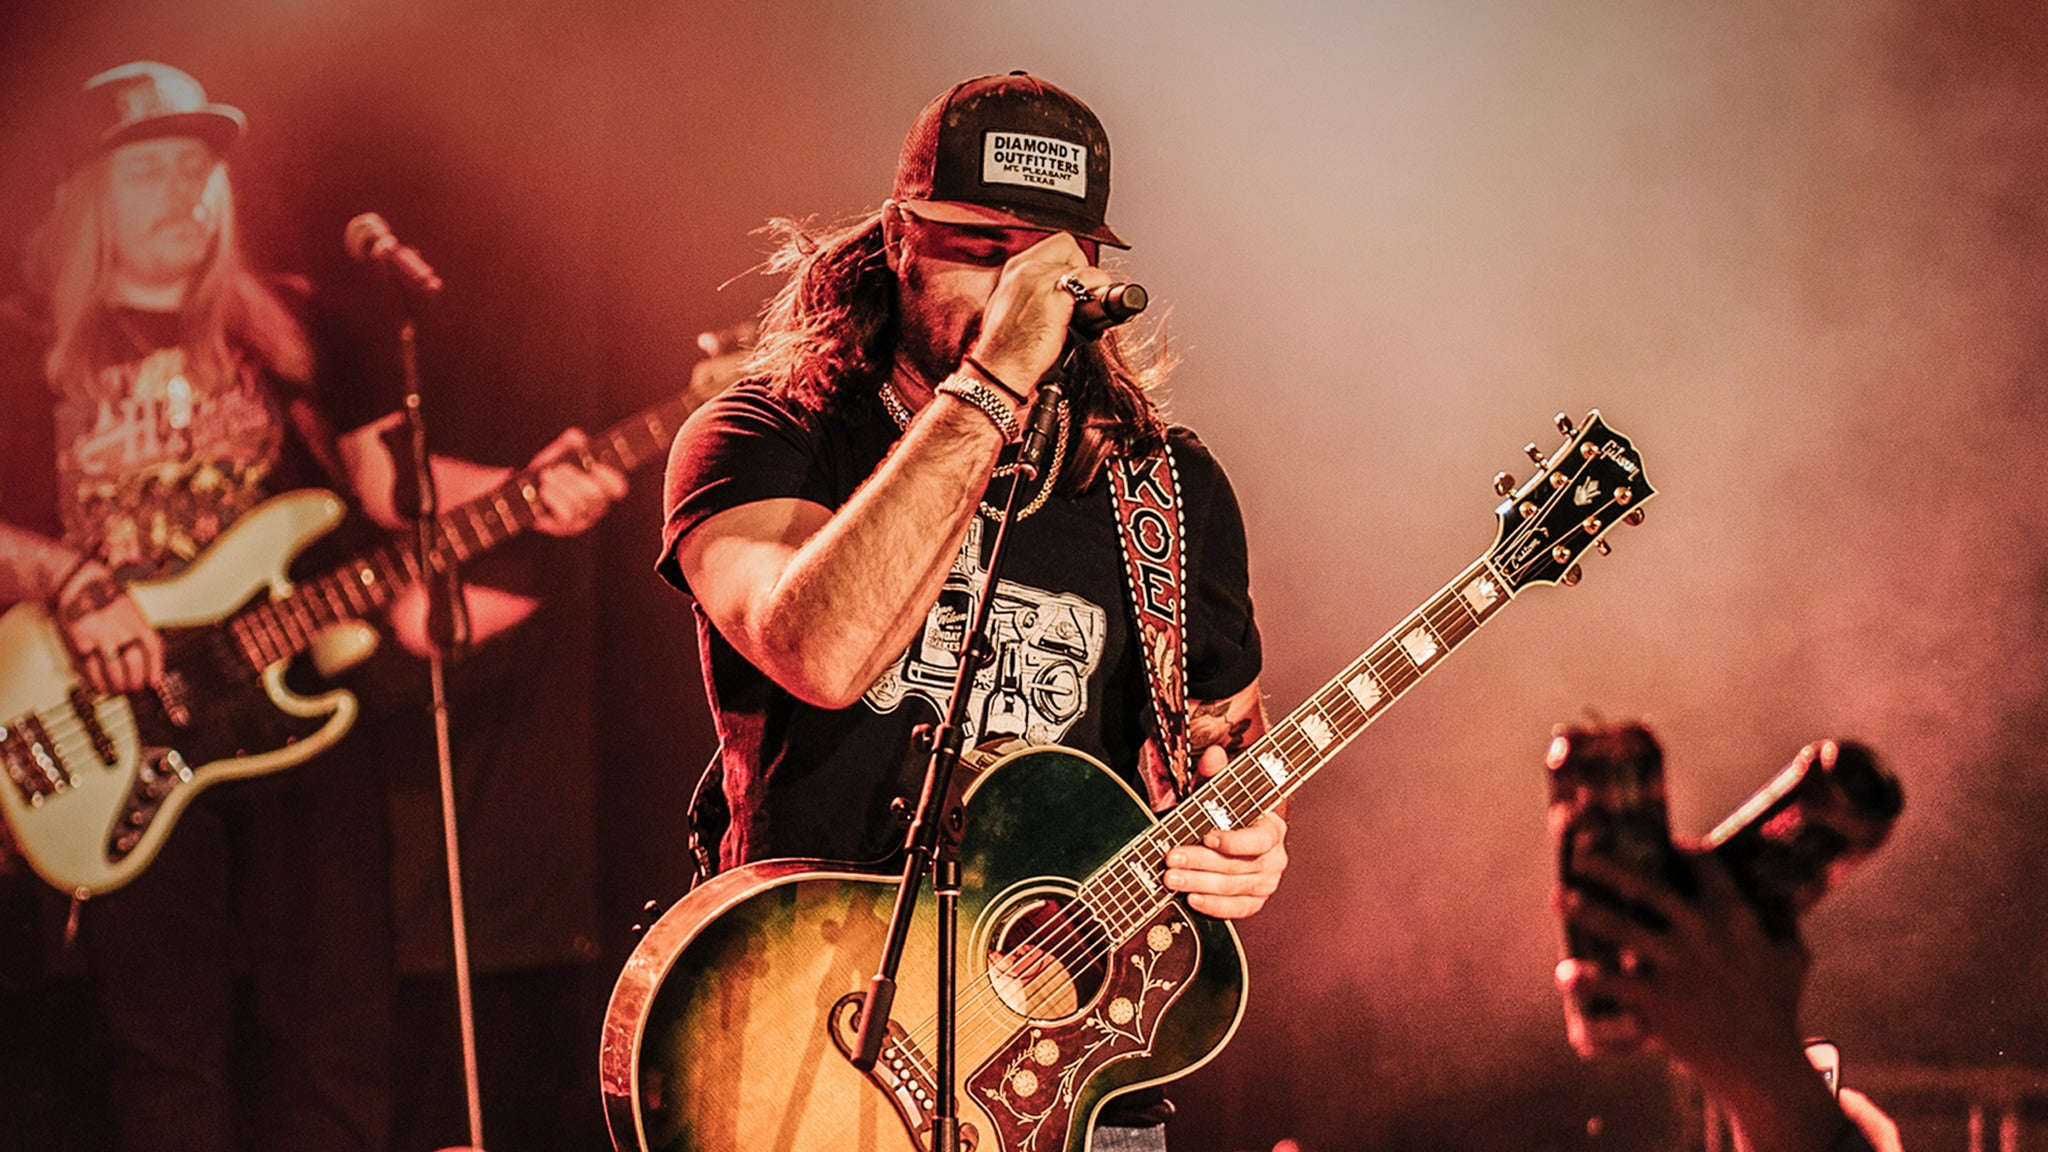 Koe Wetzel presale code for performance tickets in Indianapolis, IN (Old National Centre)